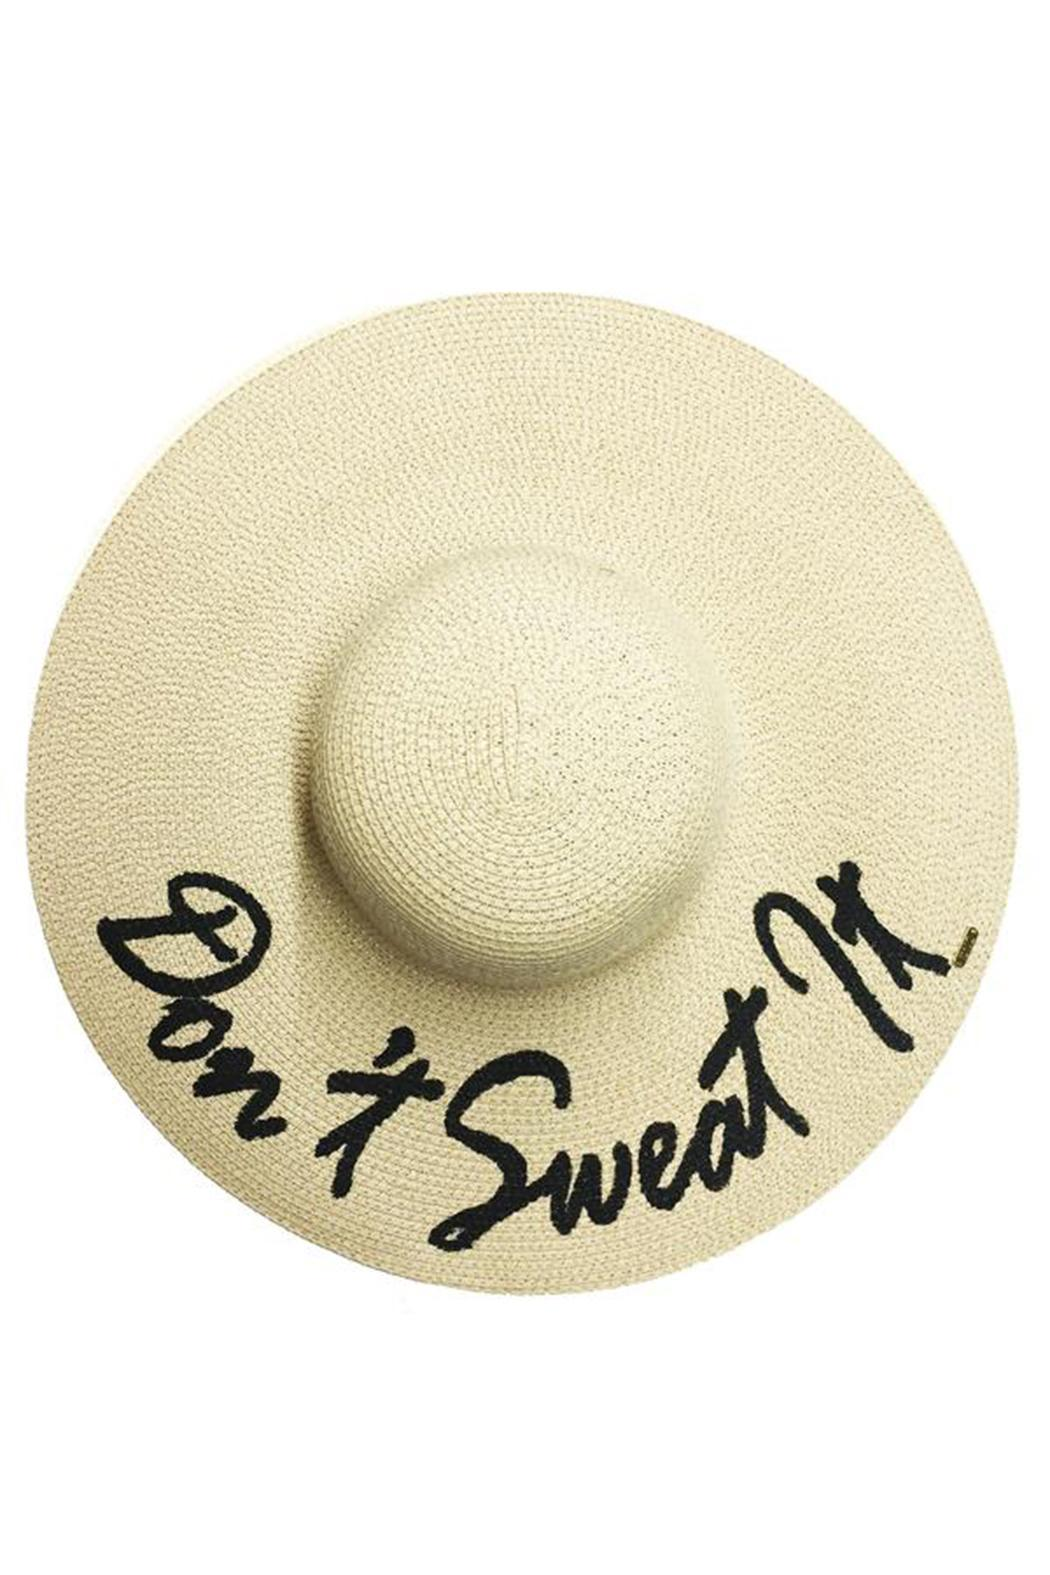 Abaco Beach Company Don't Sweat It Hat - Front Cropped Image